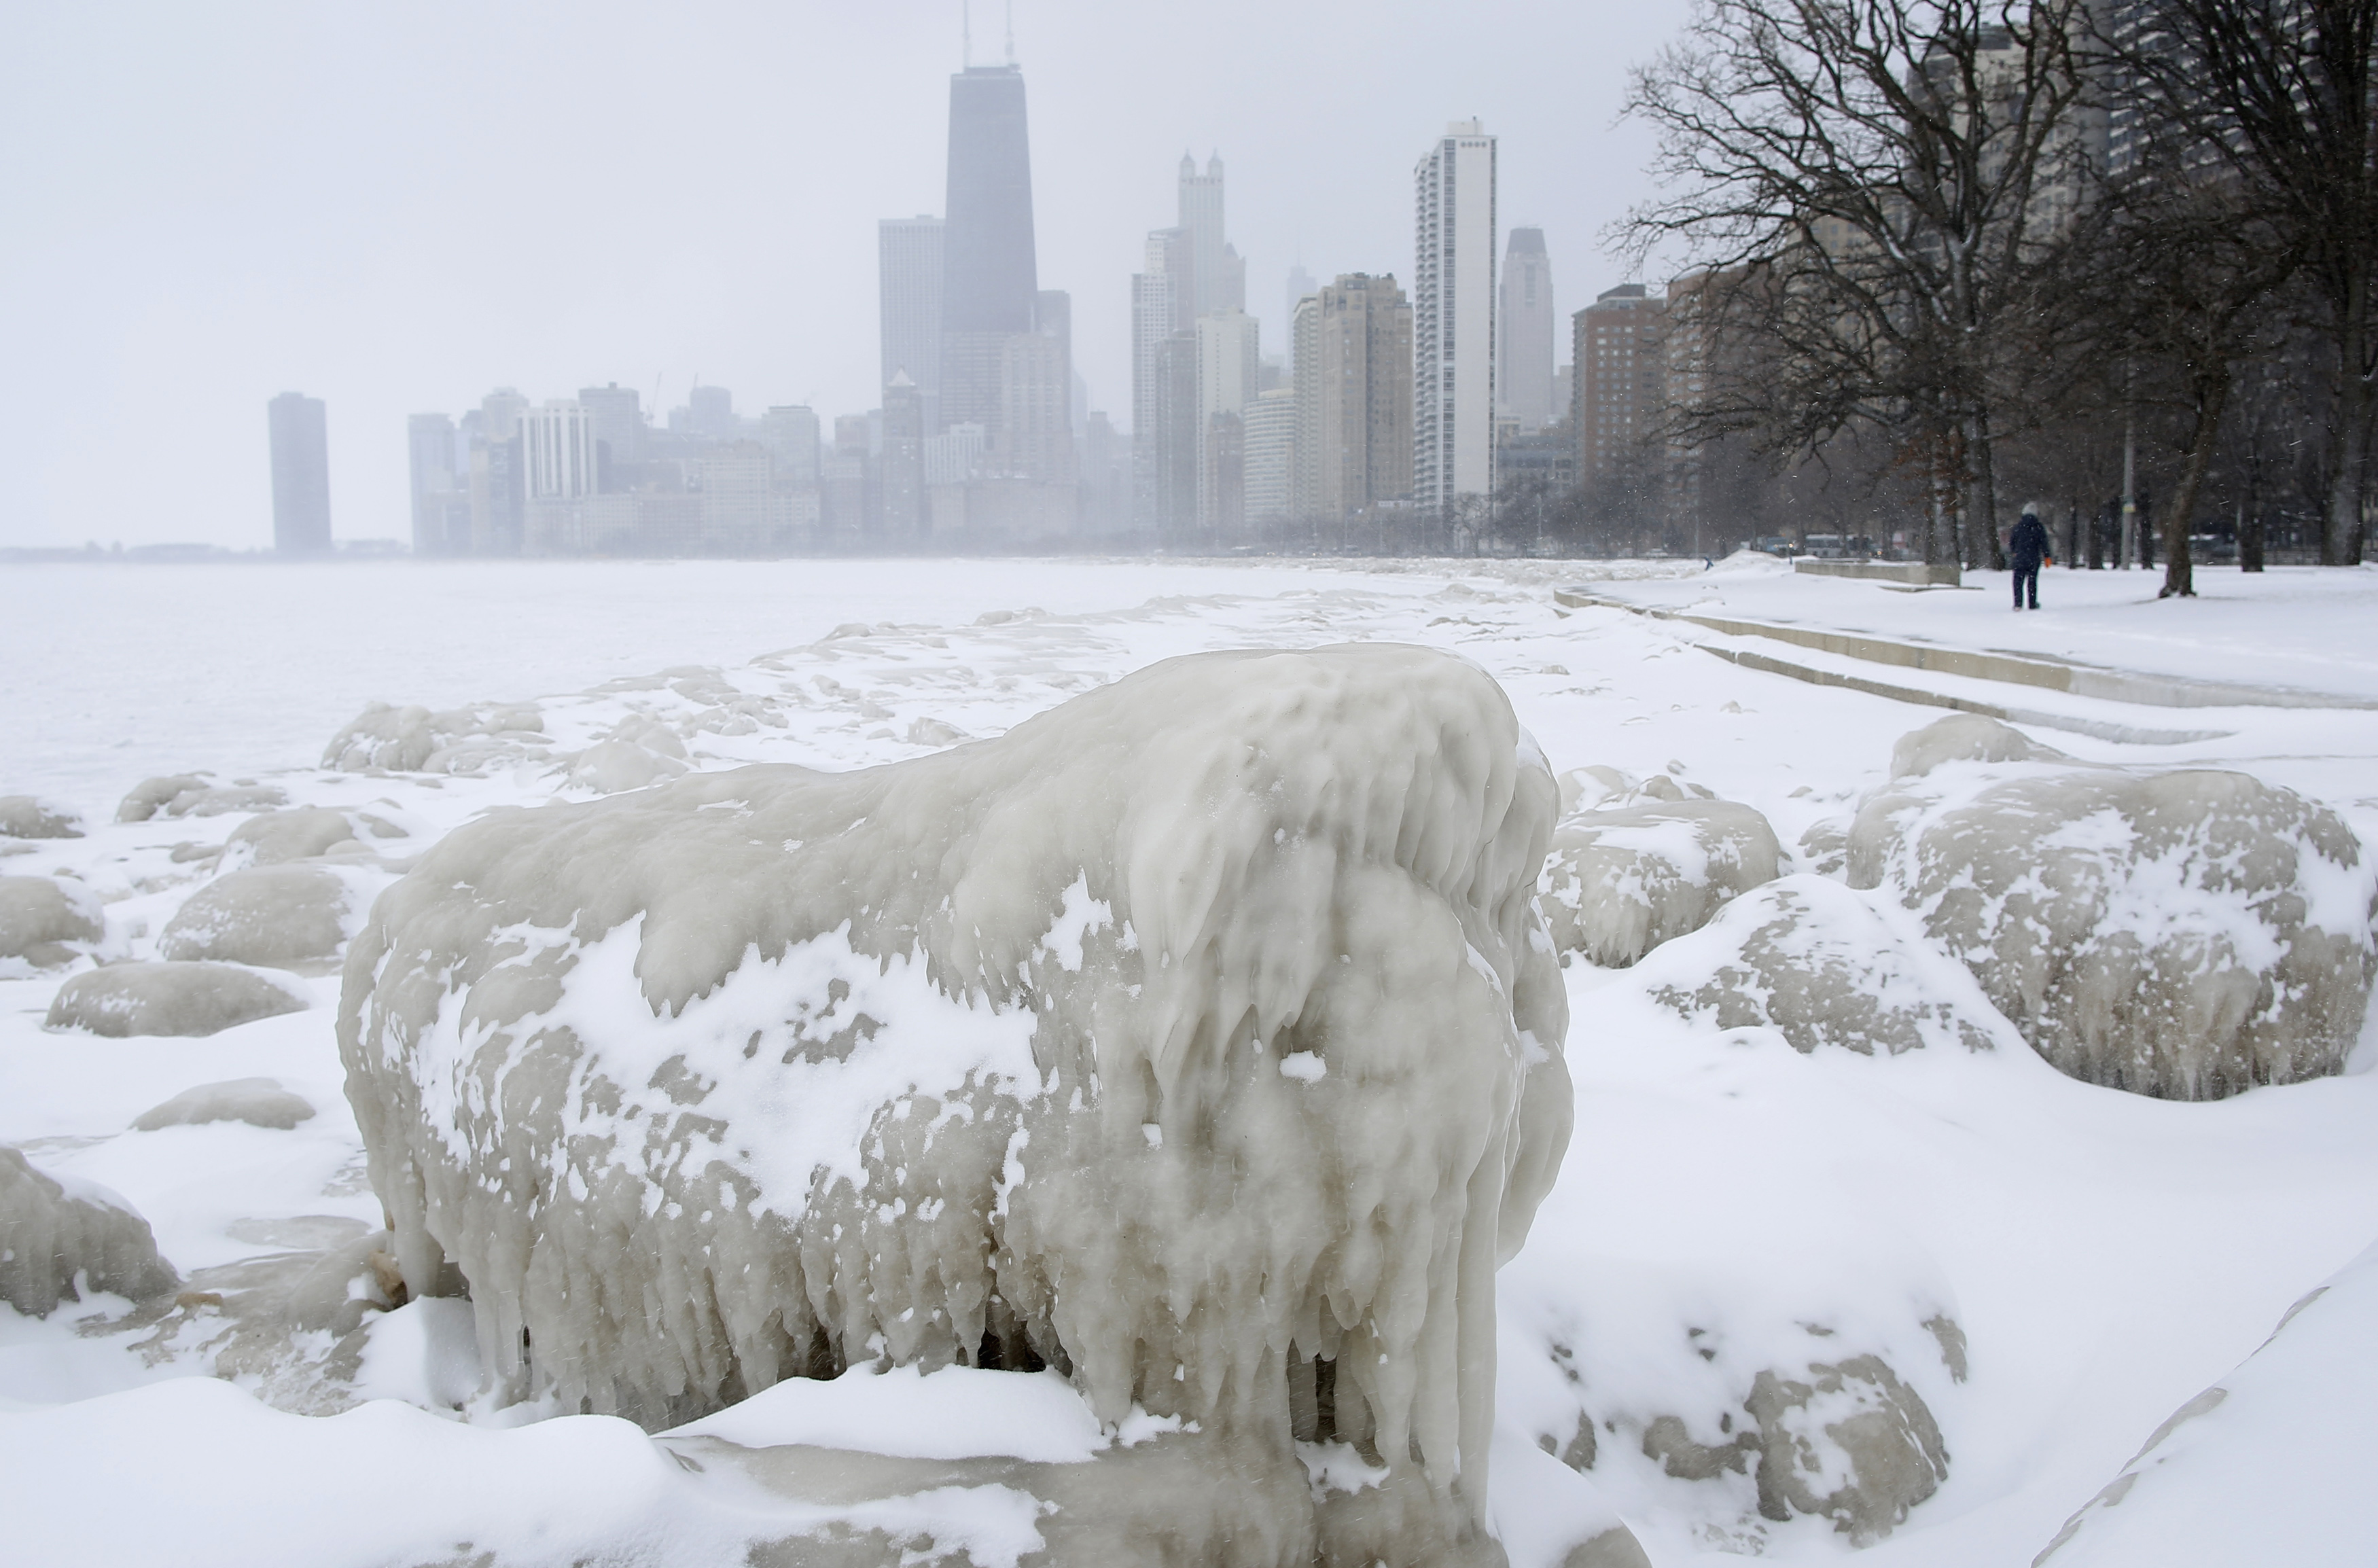 A woman walks along a path past mounds of snow and ice along Lake Michigan in Chicago, Illinois, February 26, 2015.  This February was the coldest on record for many cities across the US. Photo by Jim Young/REUTERS.